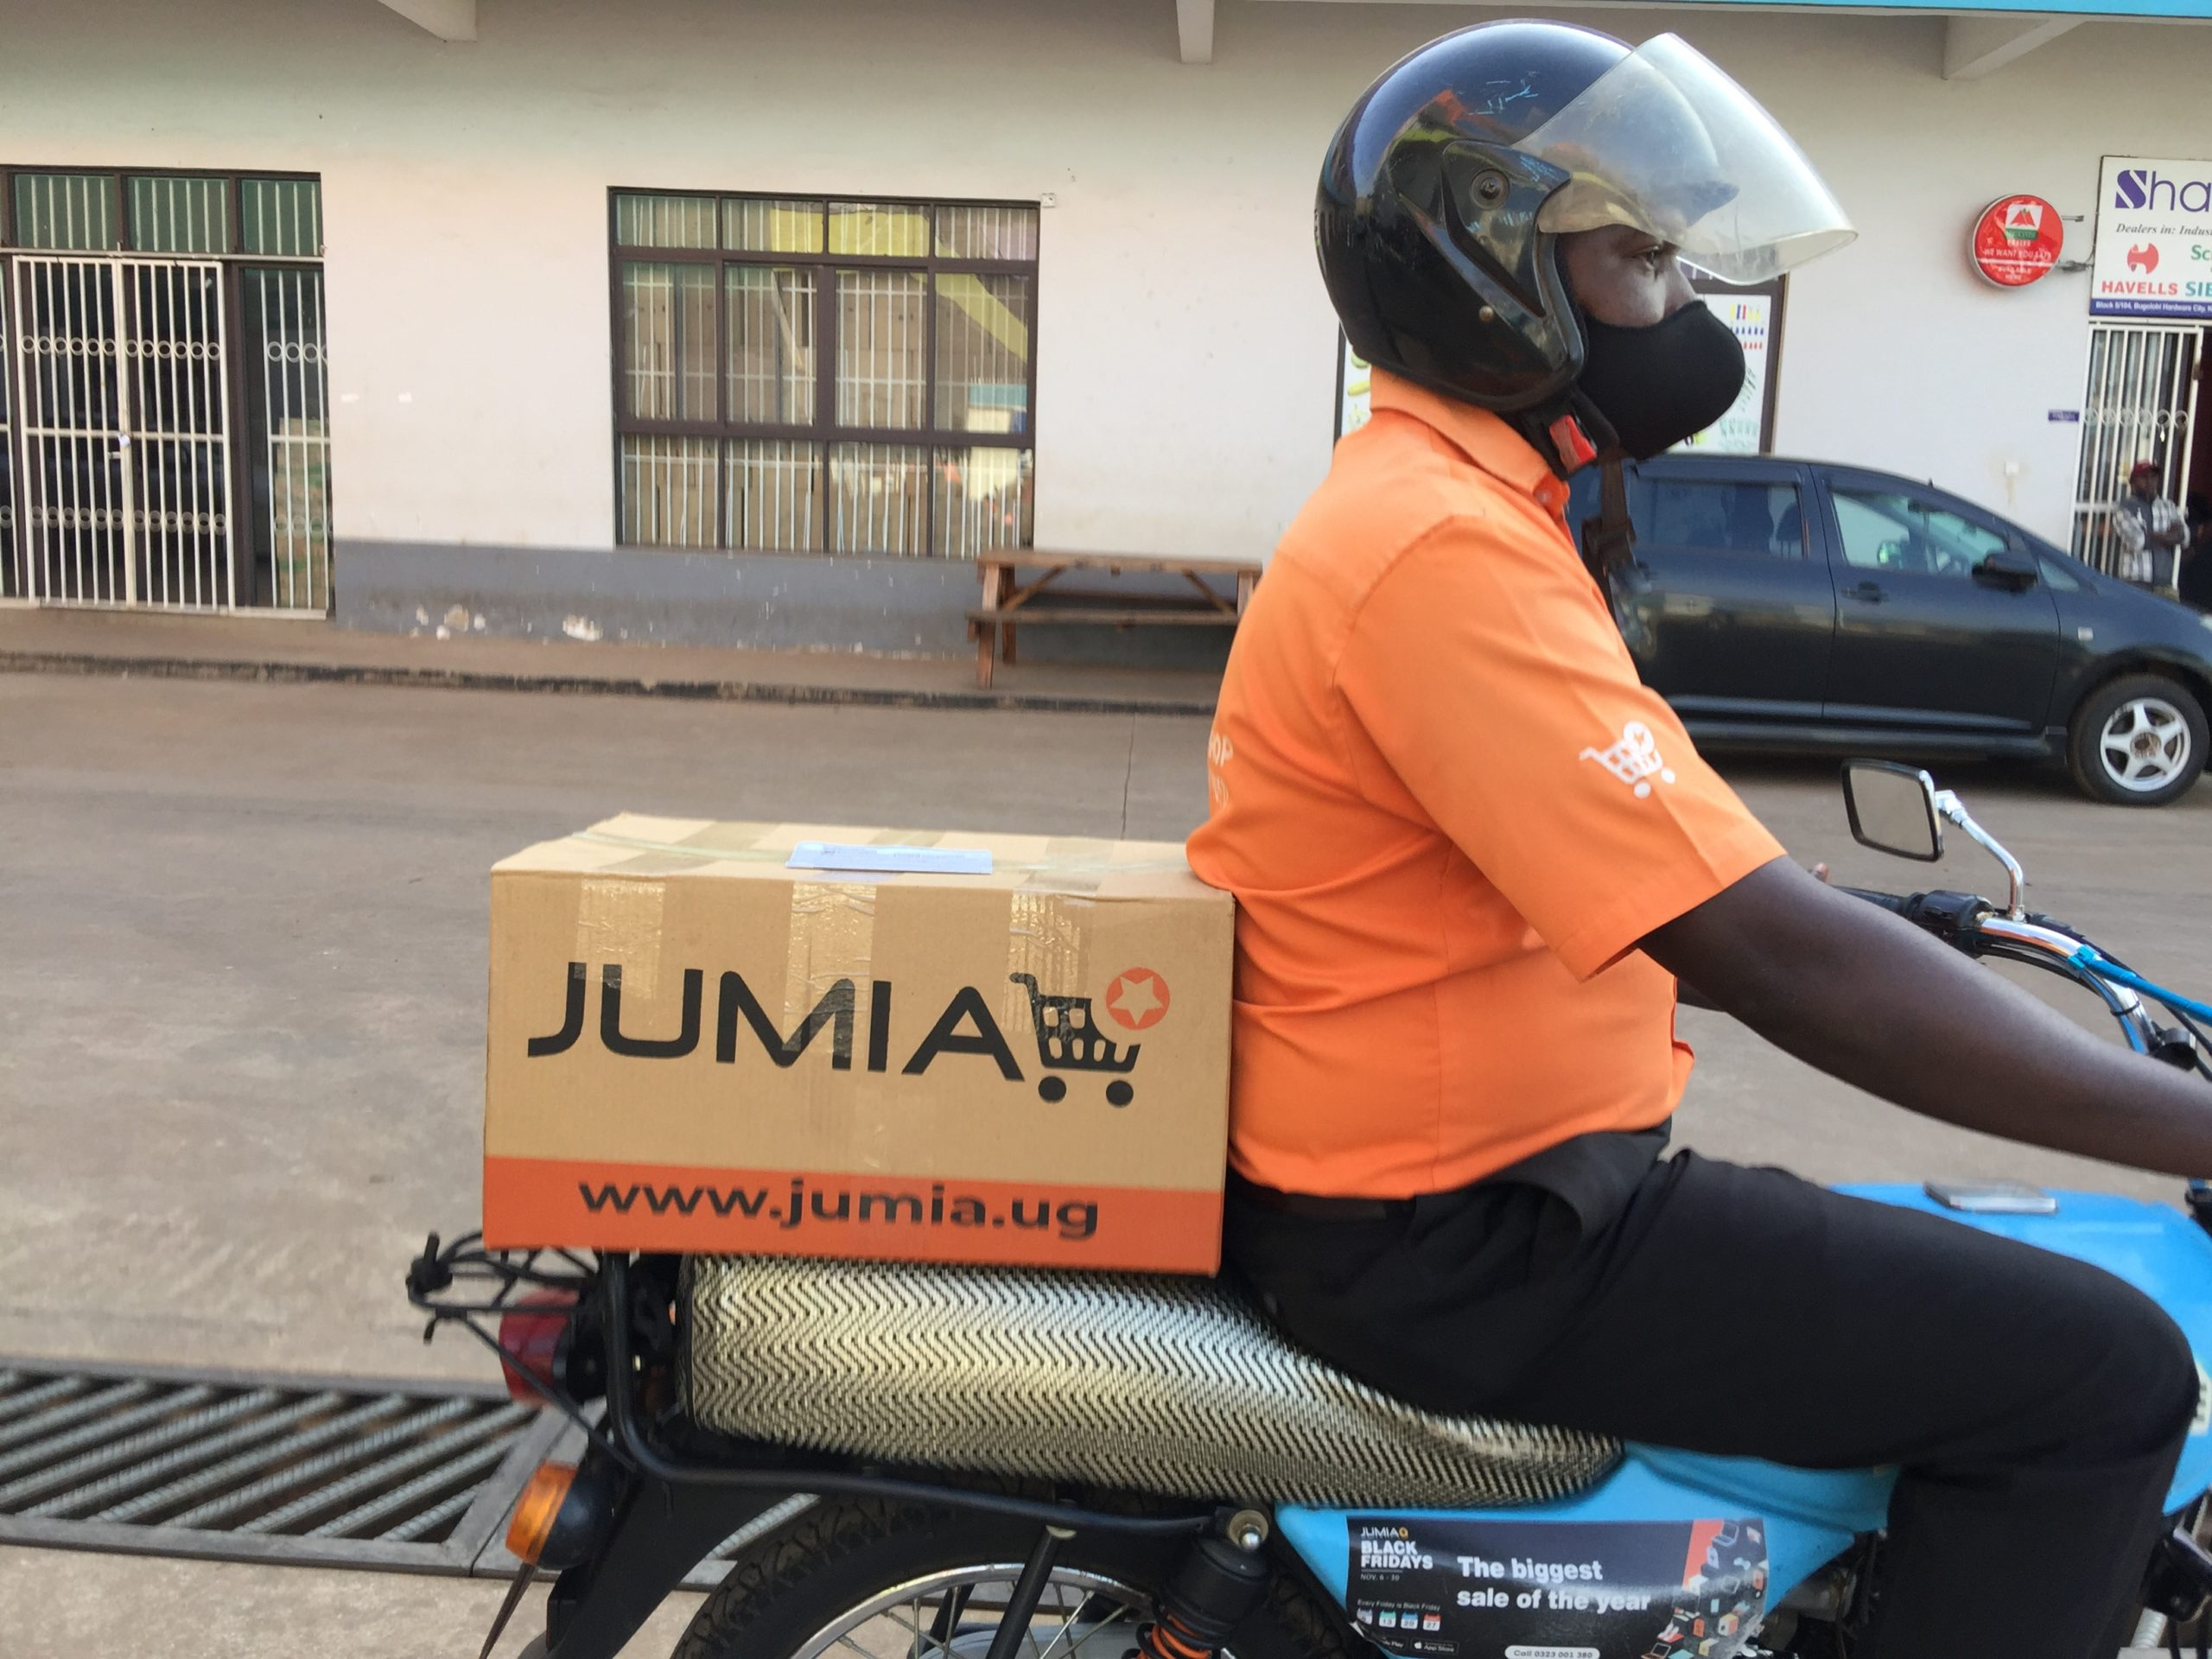 Jumia Uganda is also present upcountry through hundreds of pick up stations including Bata stores in Mbarara, Fort Portal, Lira and more where consumers can pick orders they place on Jumia (PHOTO/File).